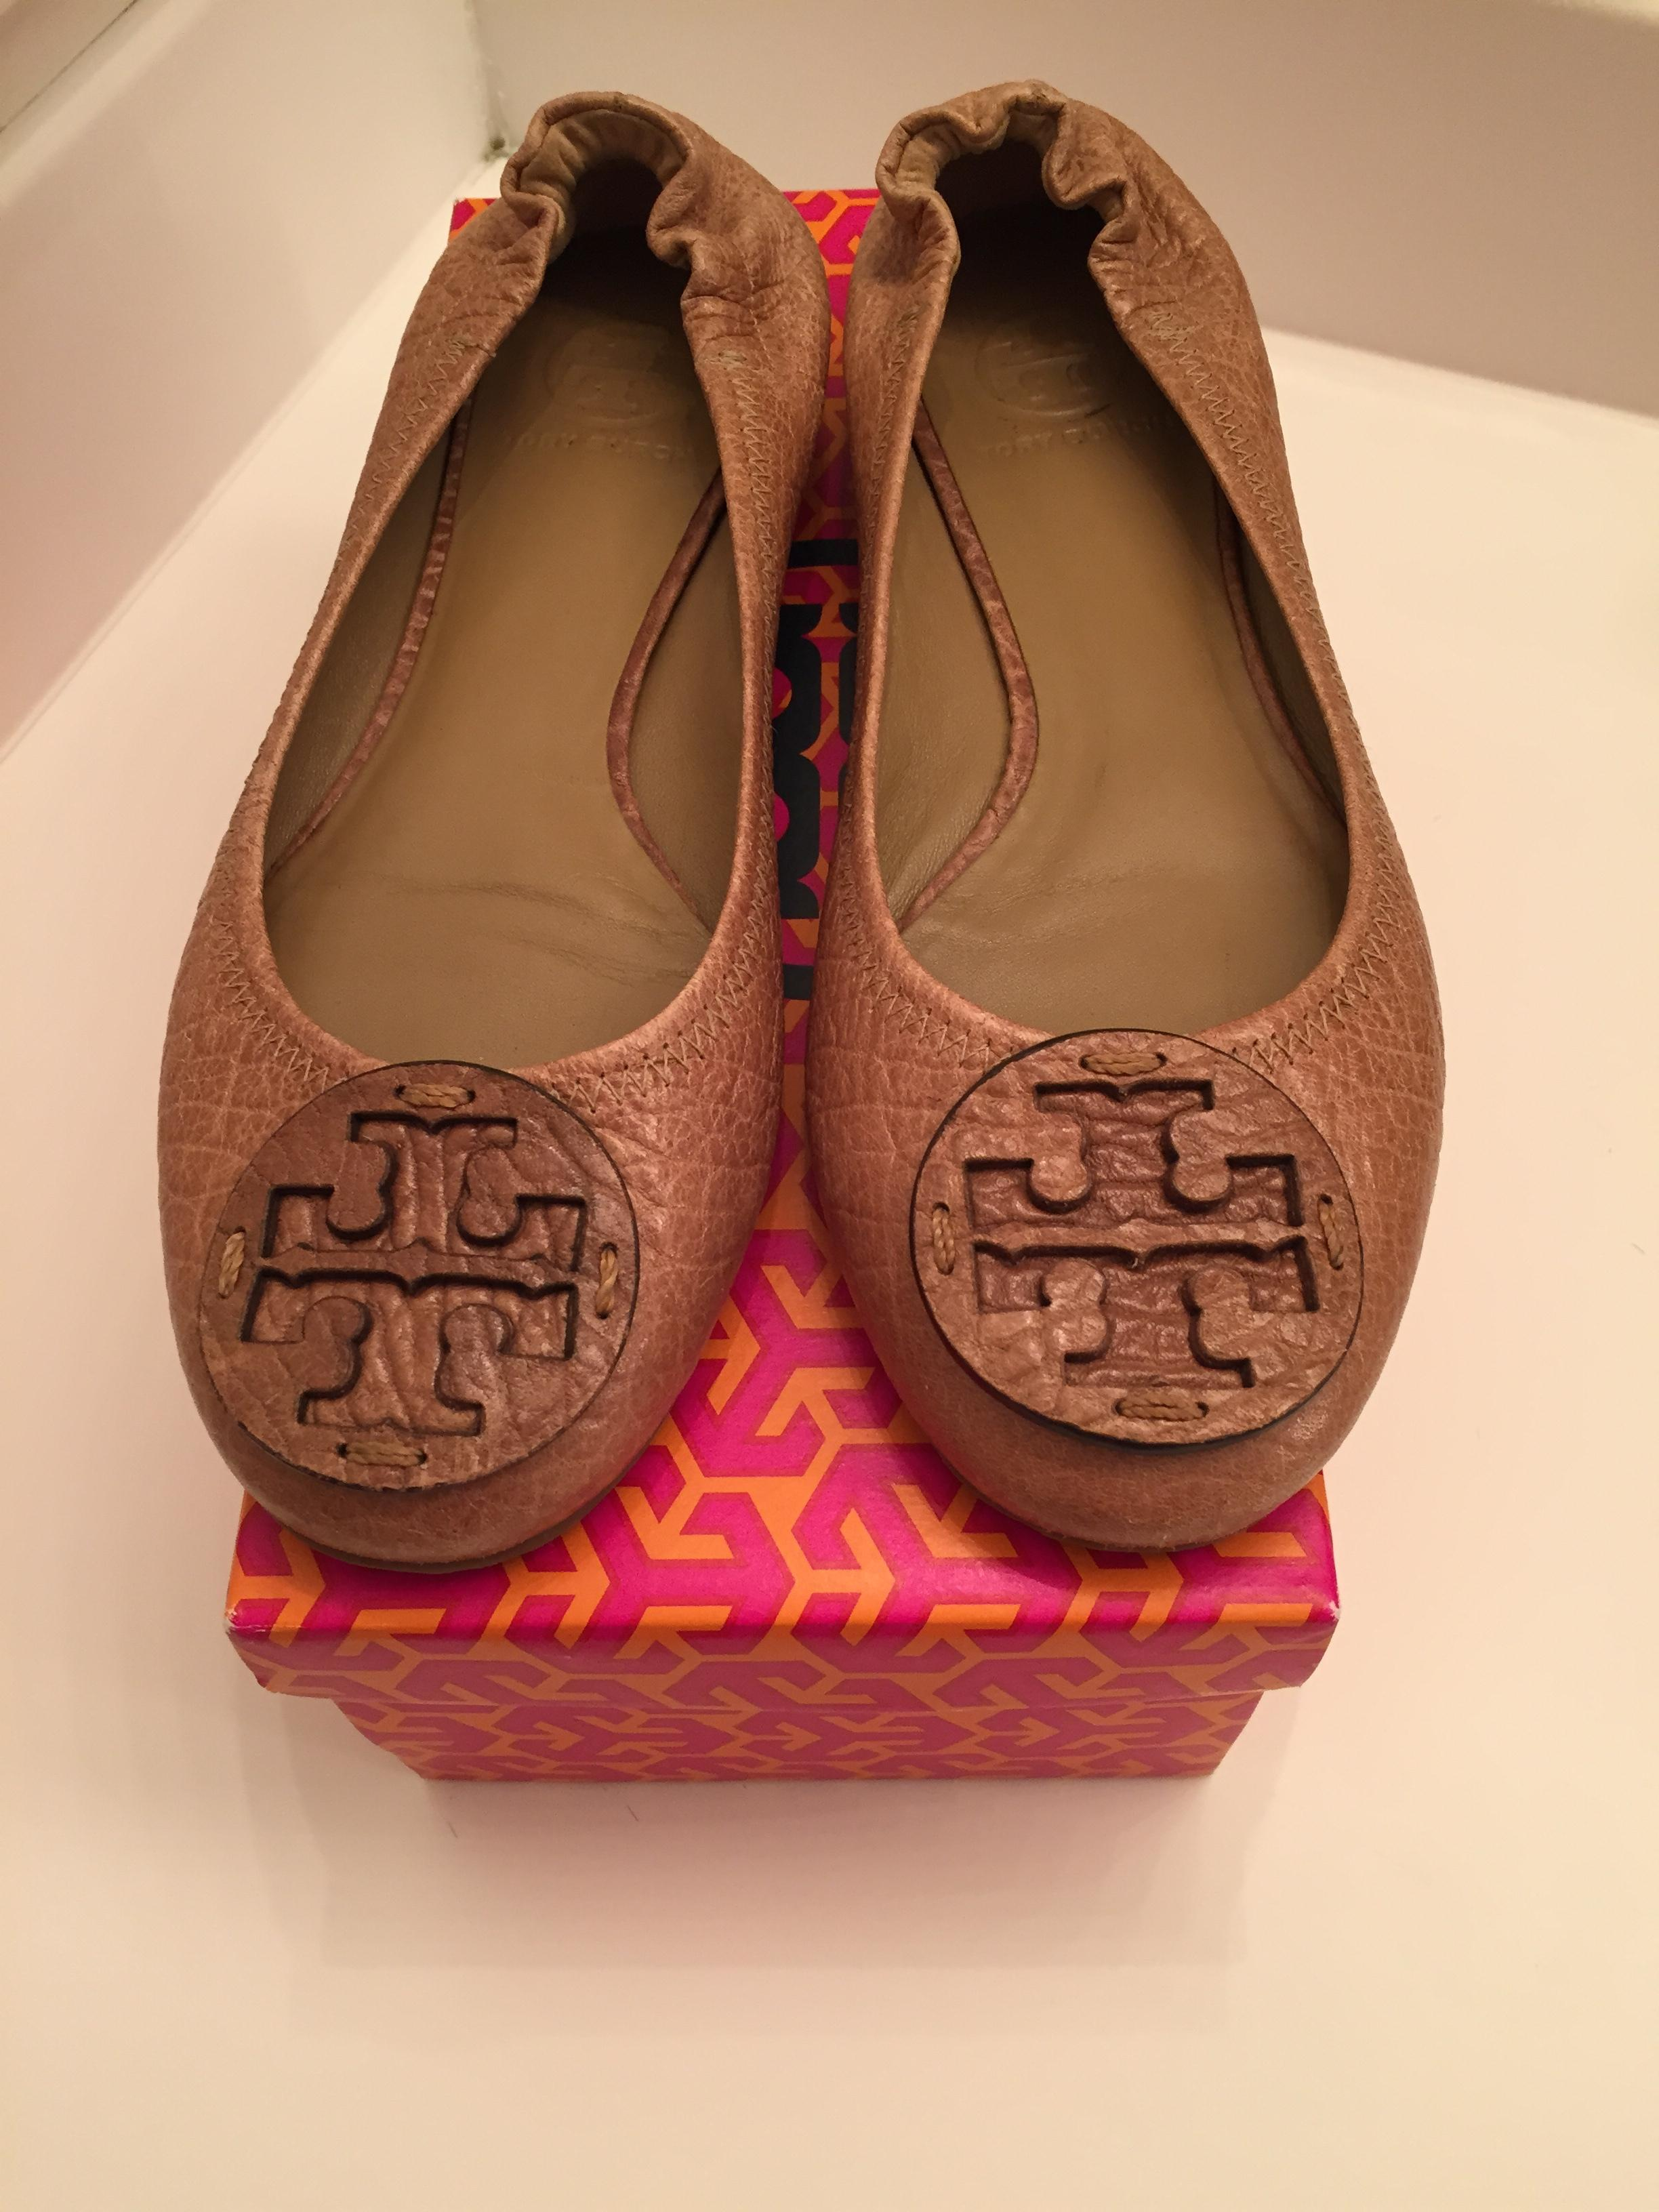 5a1d52245073 ... uk tory burch classic leather neutral ballet leather logo sand flats  3aa18 affcf